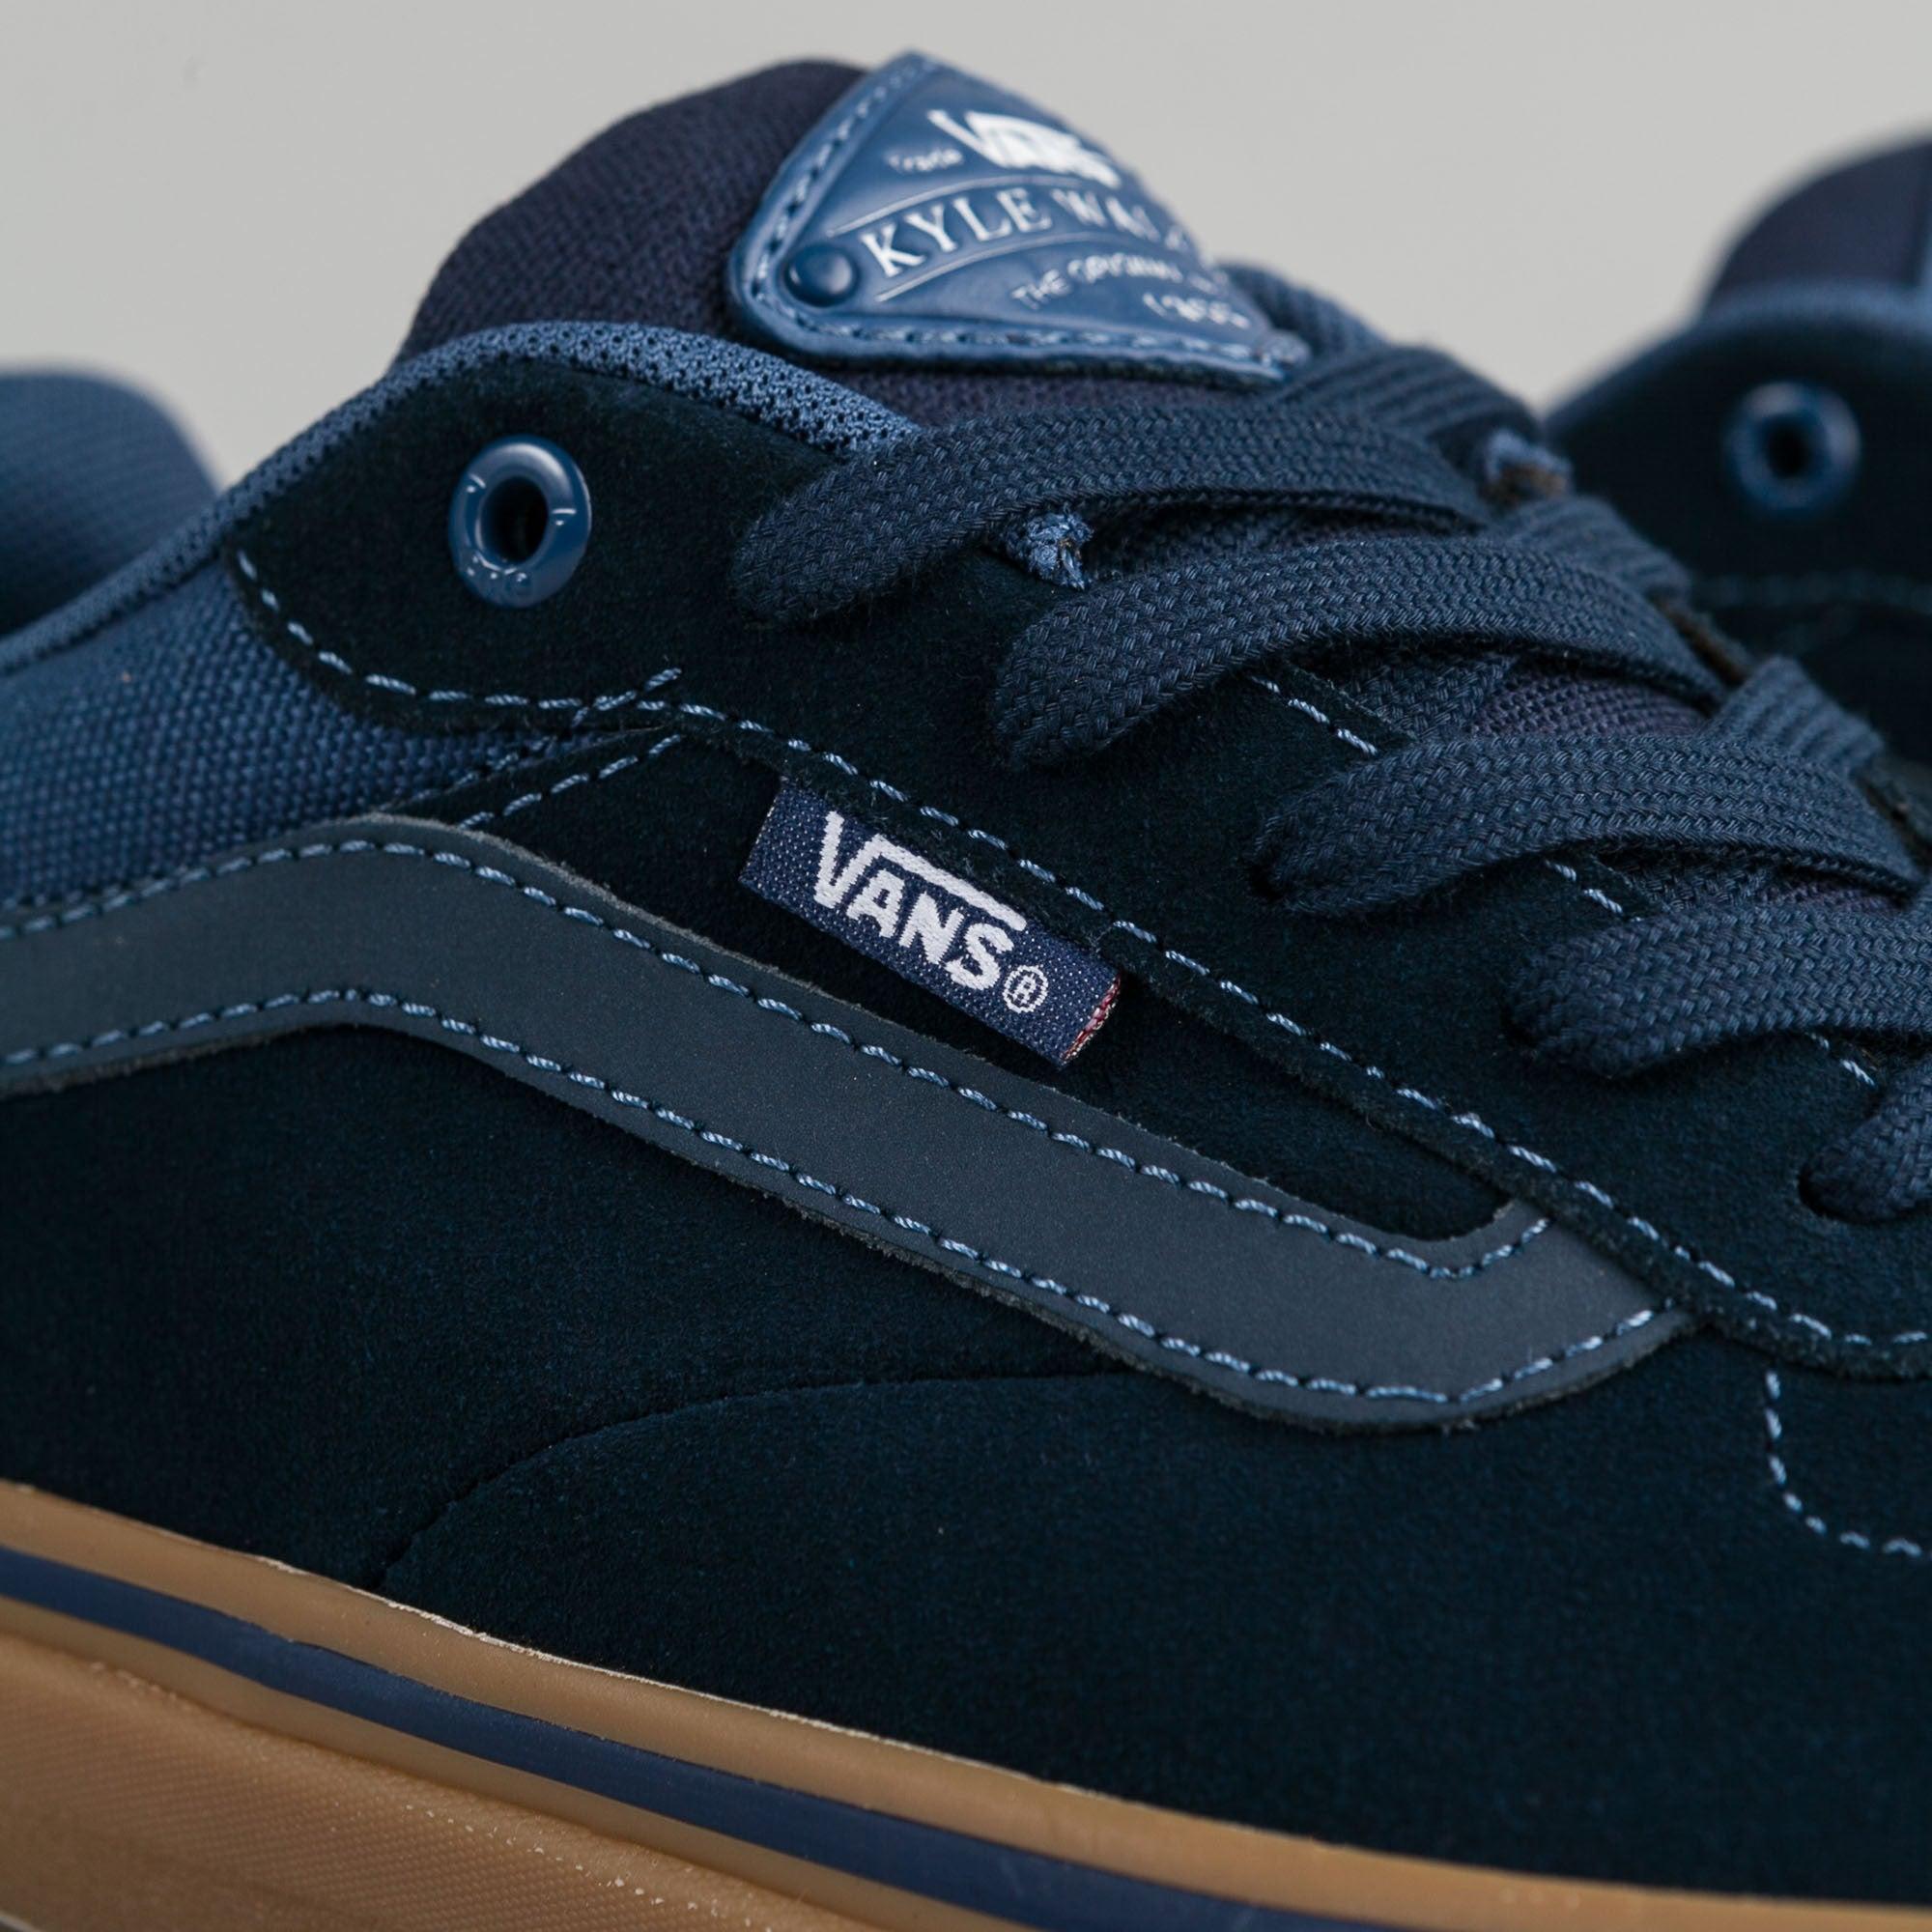 Vans Kyle Walker Pro Shoes - Dress Blues / Gum